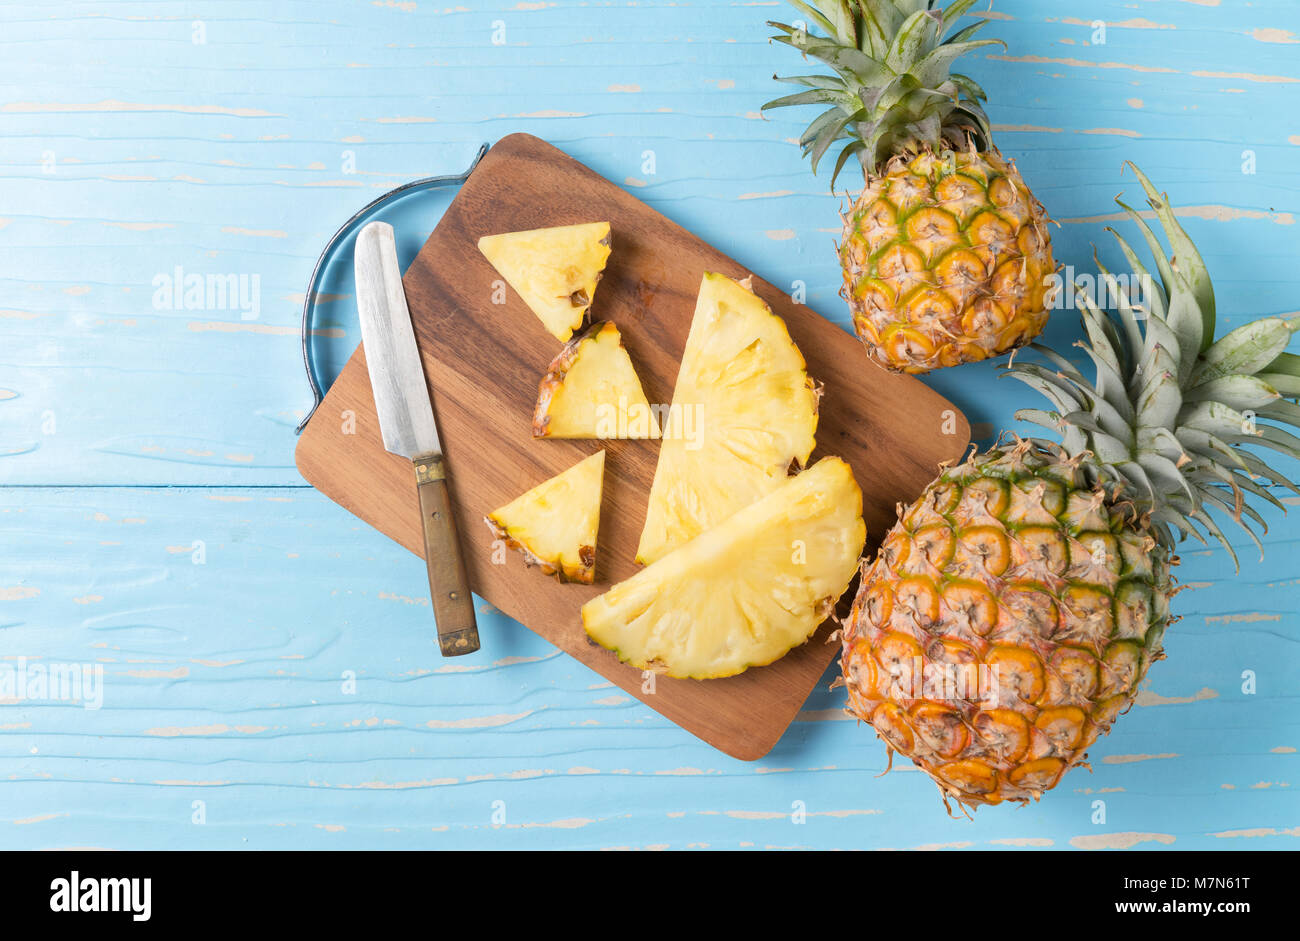 fresh sliced pineapple on wood block and blue wood background, summer fruits concept Stock Photo